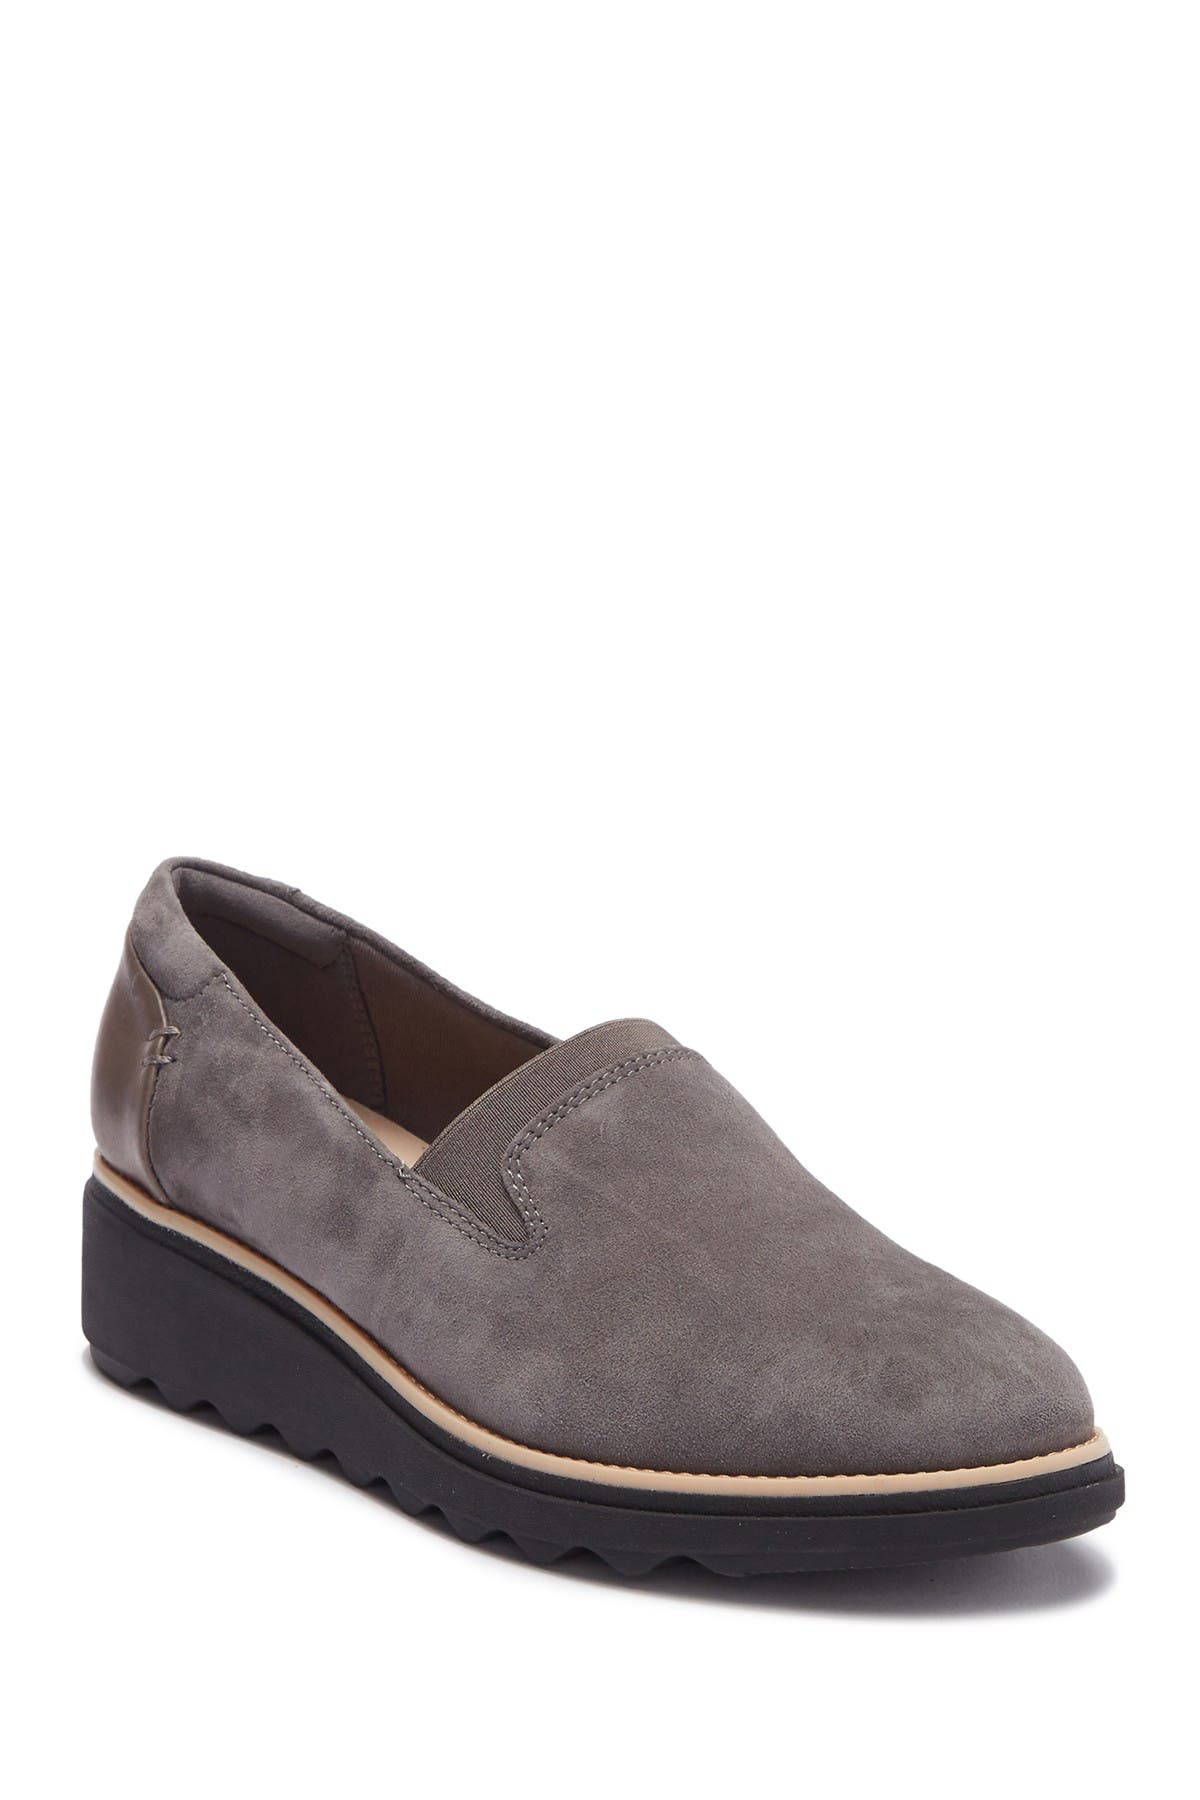 Clarks | Sharon Dolly Suede Wedge